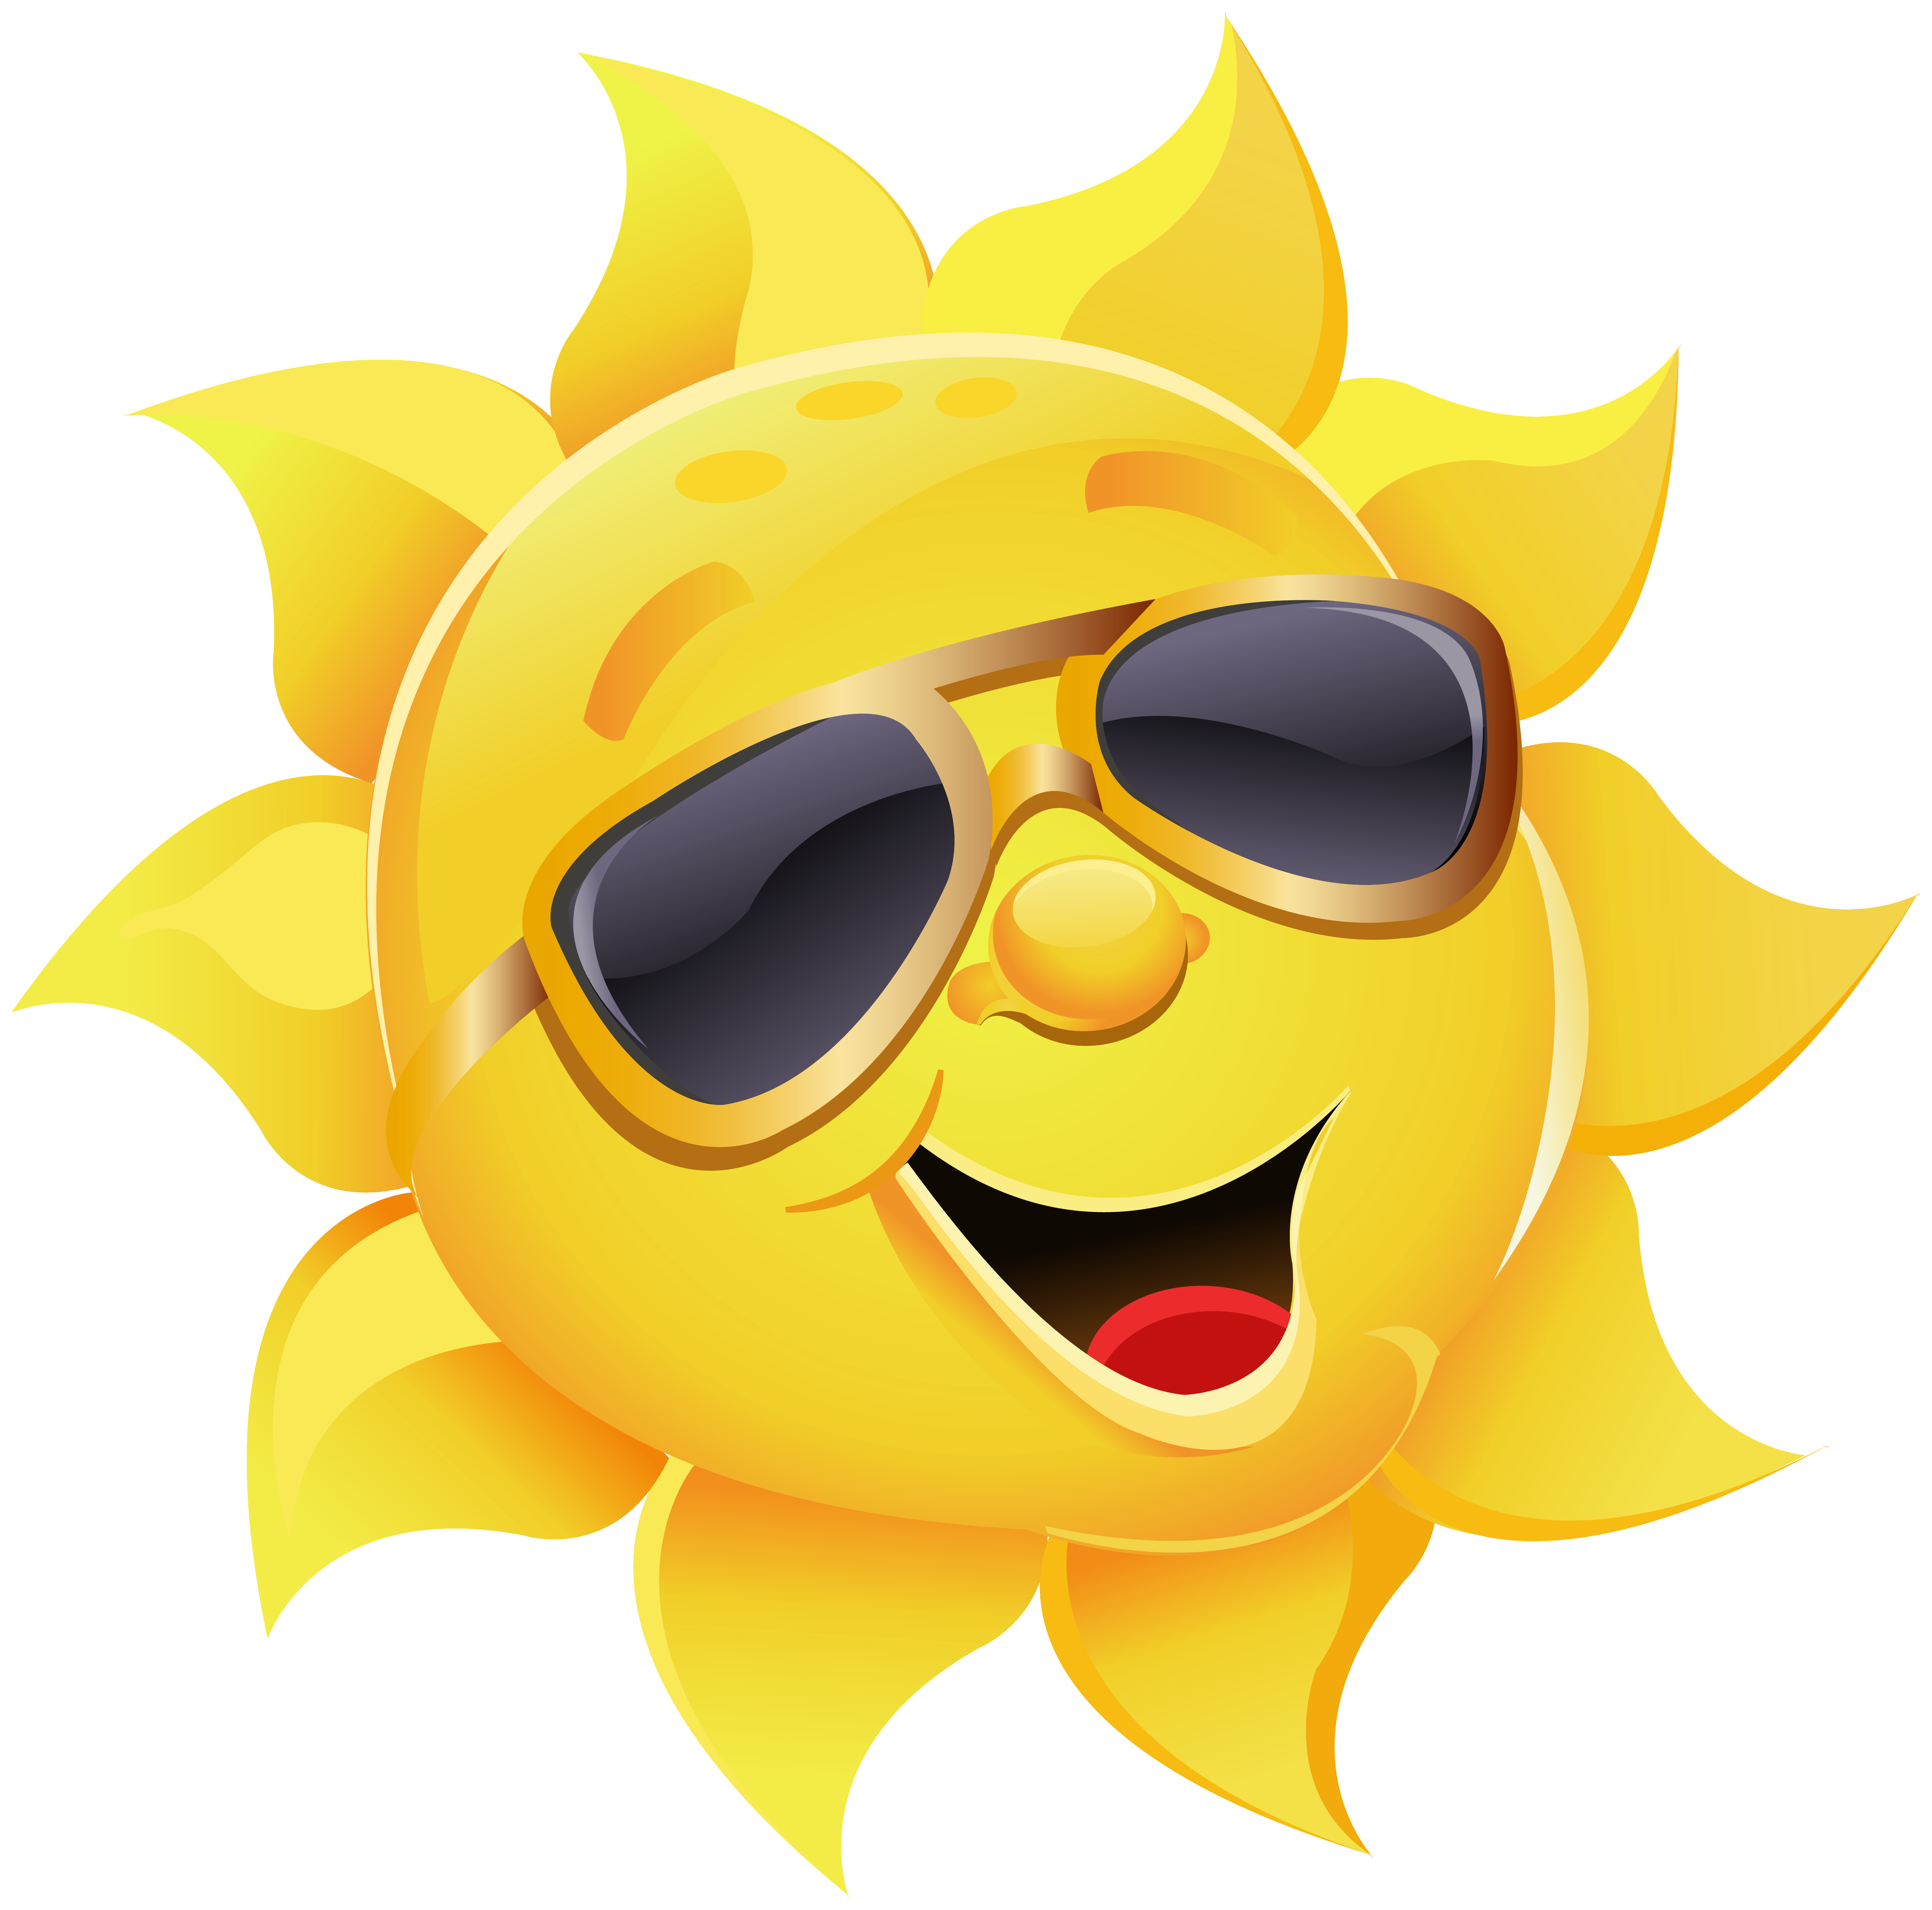 Sunglasses clipart cartoon. Sun with png image